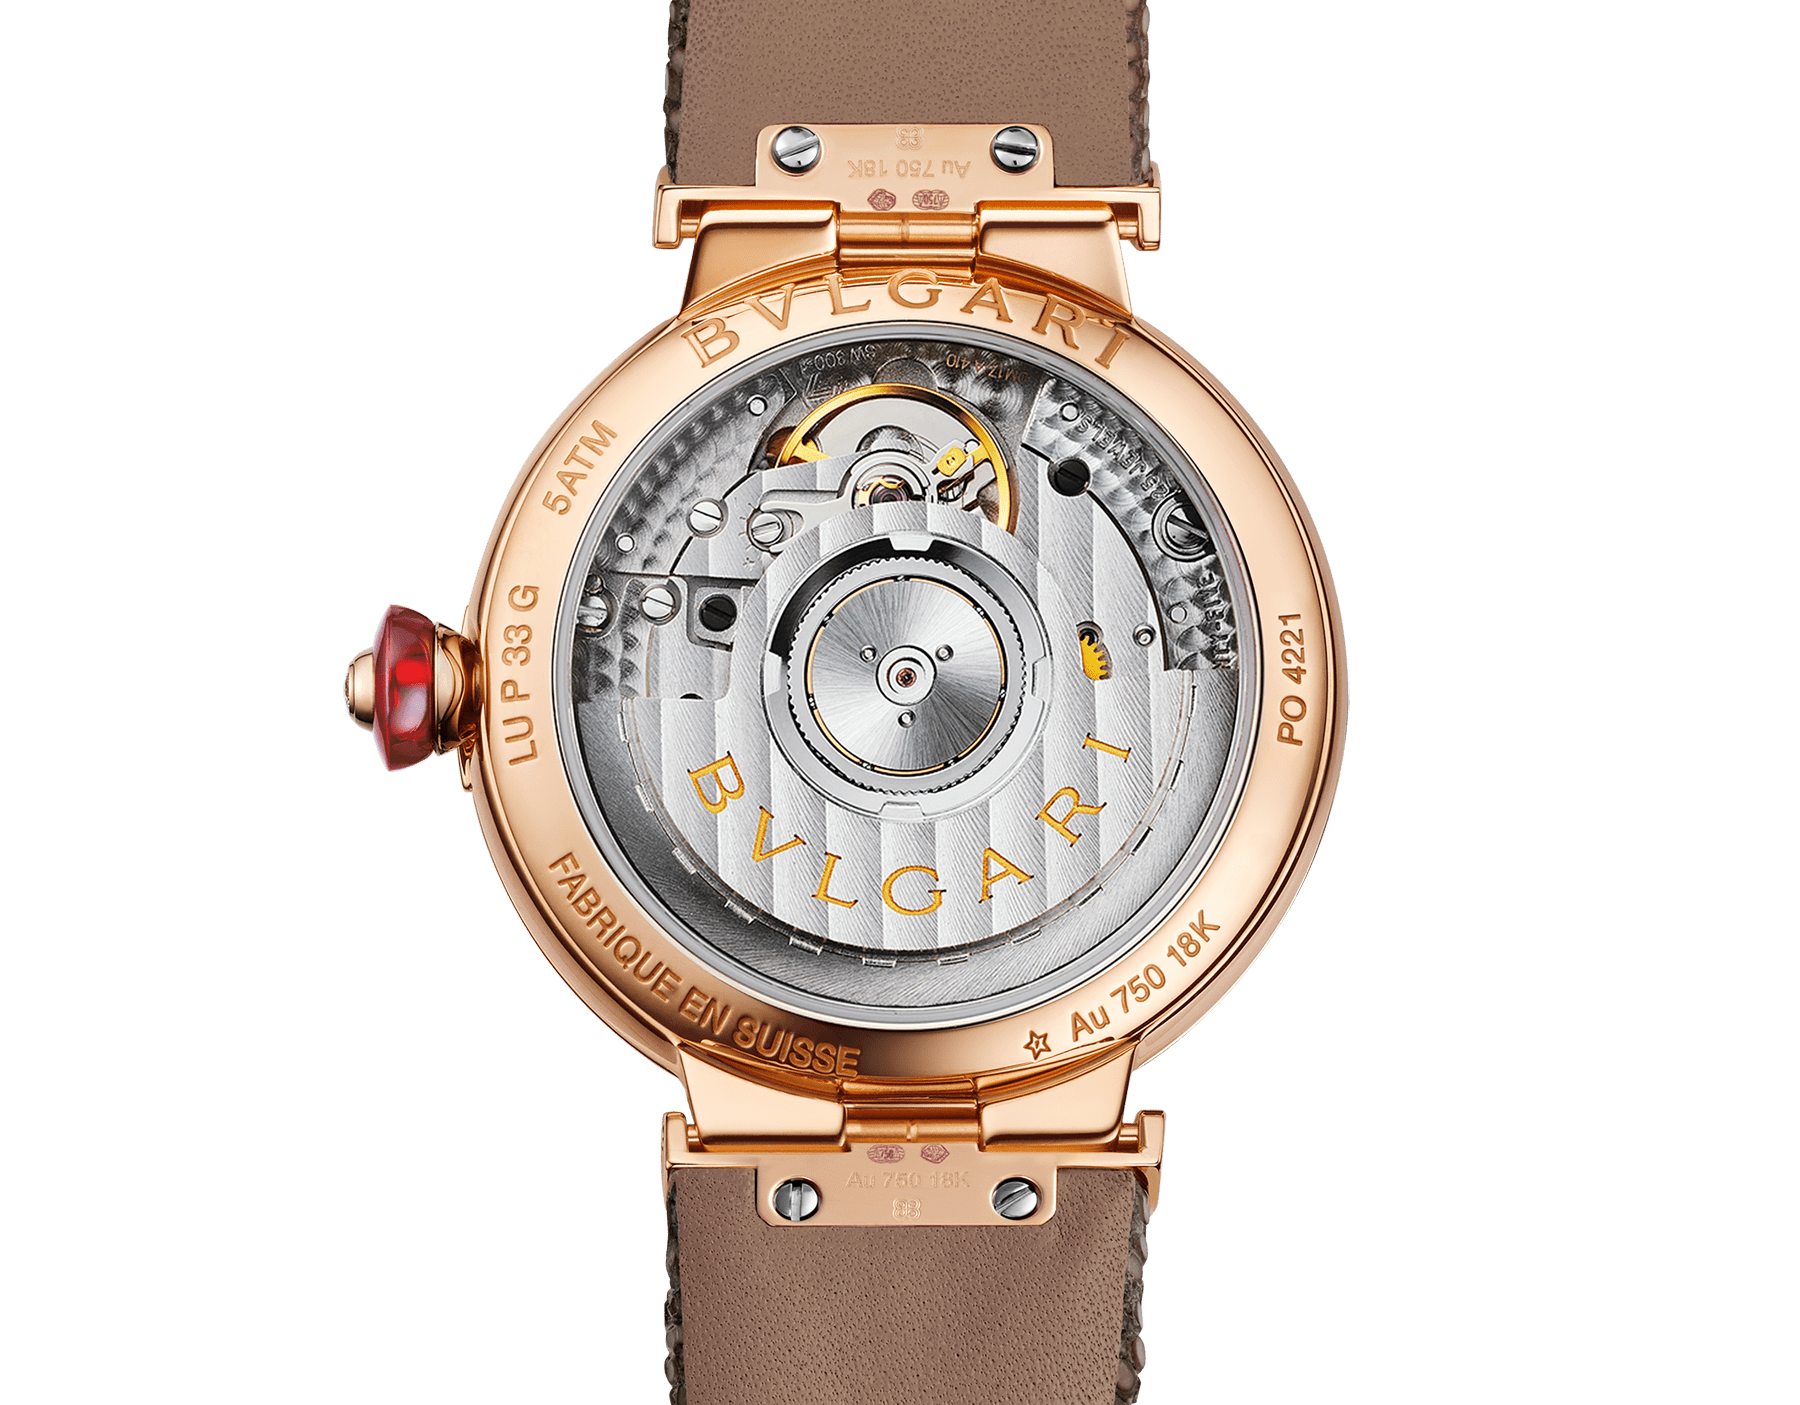 LVCEA watch with 18 kt rose gold case set with diamonds, 18 kt rose gold mosaic dial and bronze galuchat bracelet. 102799 image 4